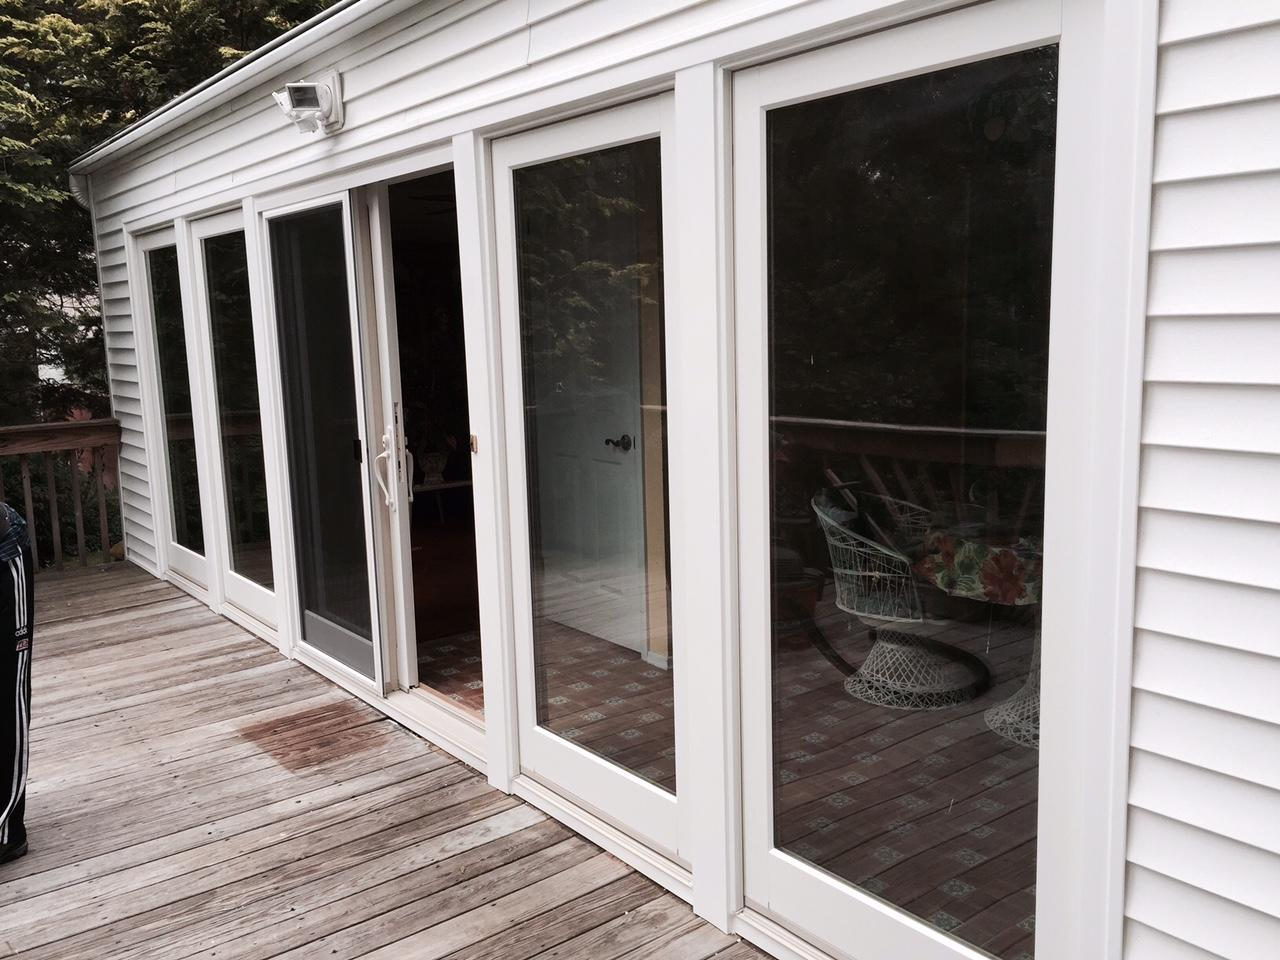 Replacement Doors Marvin Infinity Double Hung And Casement Window And Integrity Picture Windows And French Sliding Patio Door Installation In Vernon Nj Marvin Integrity Picture And French Patio Door Install